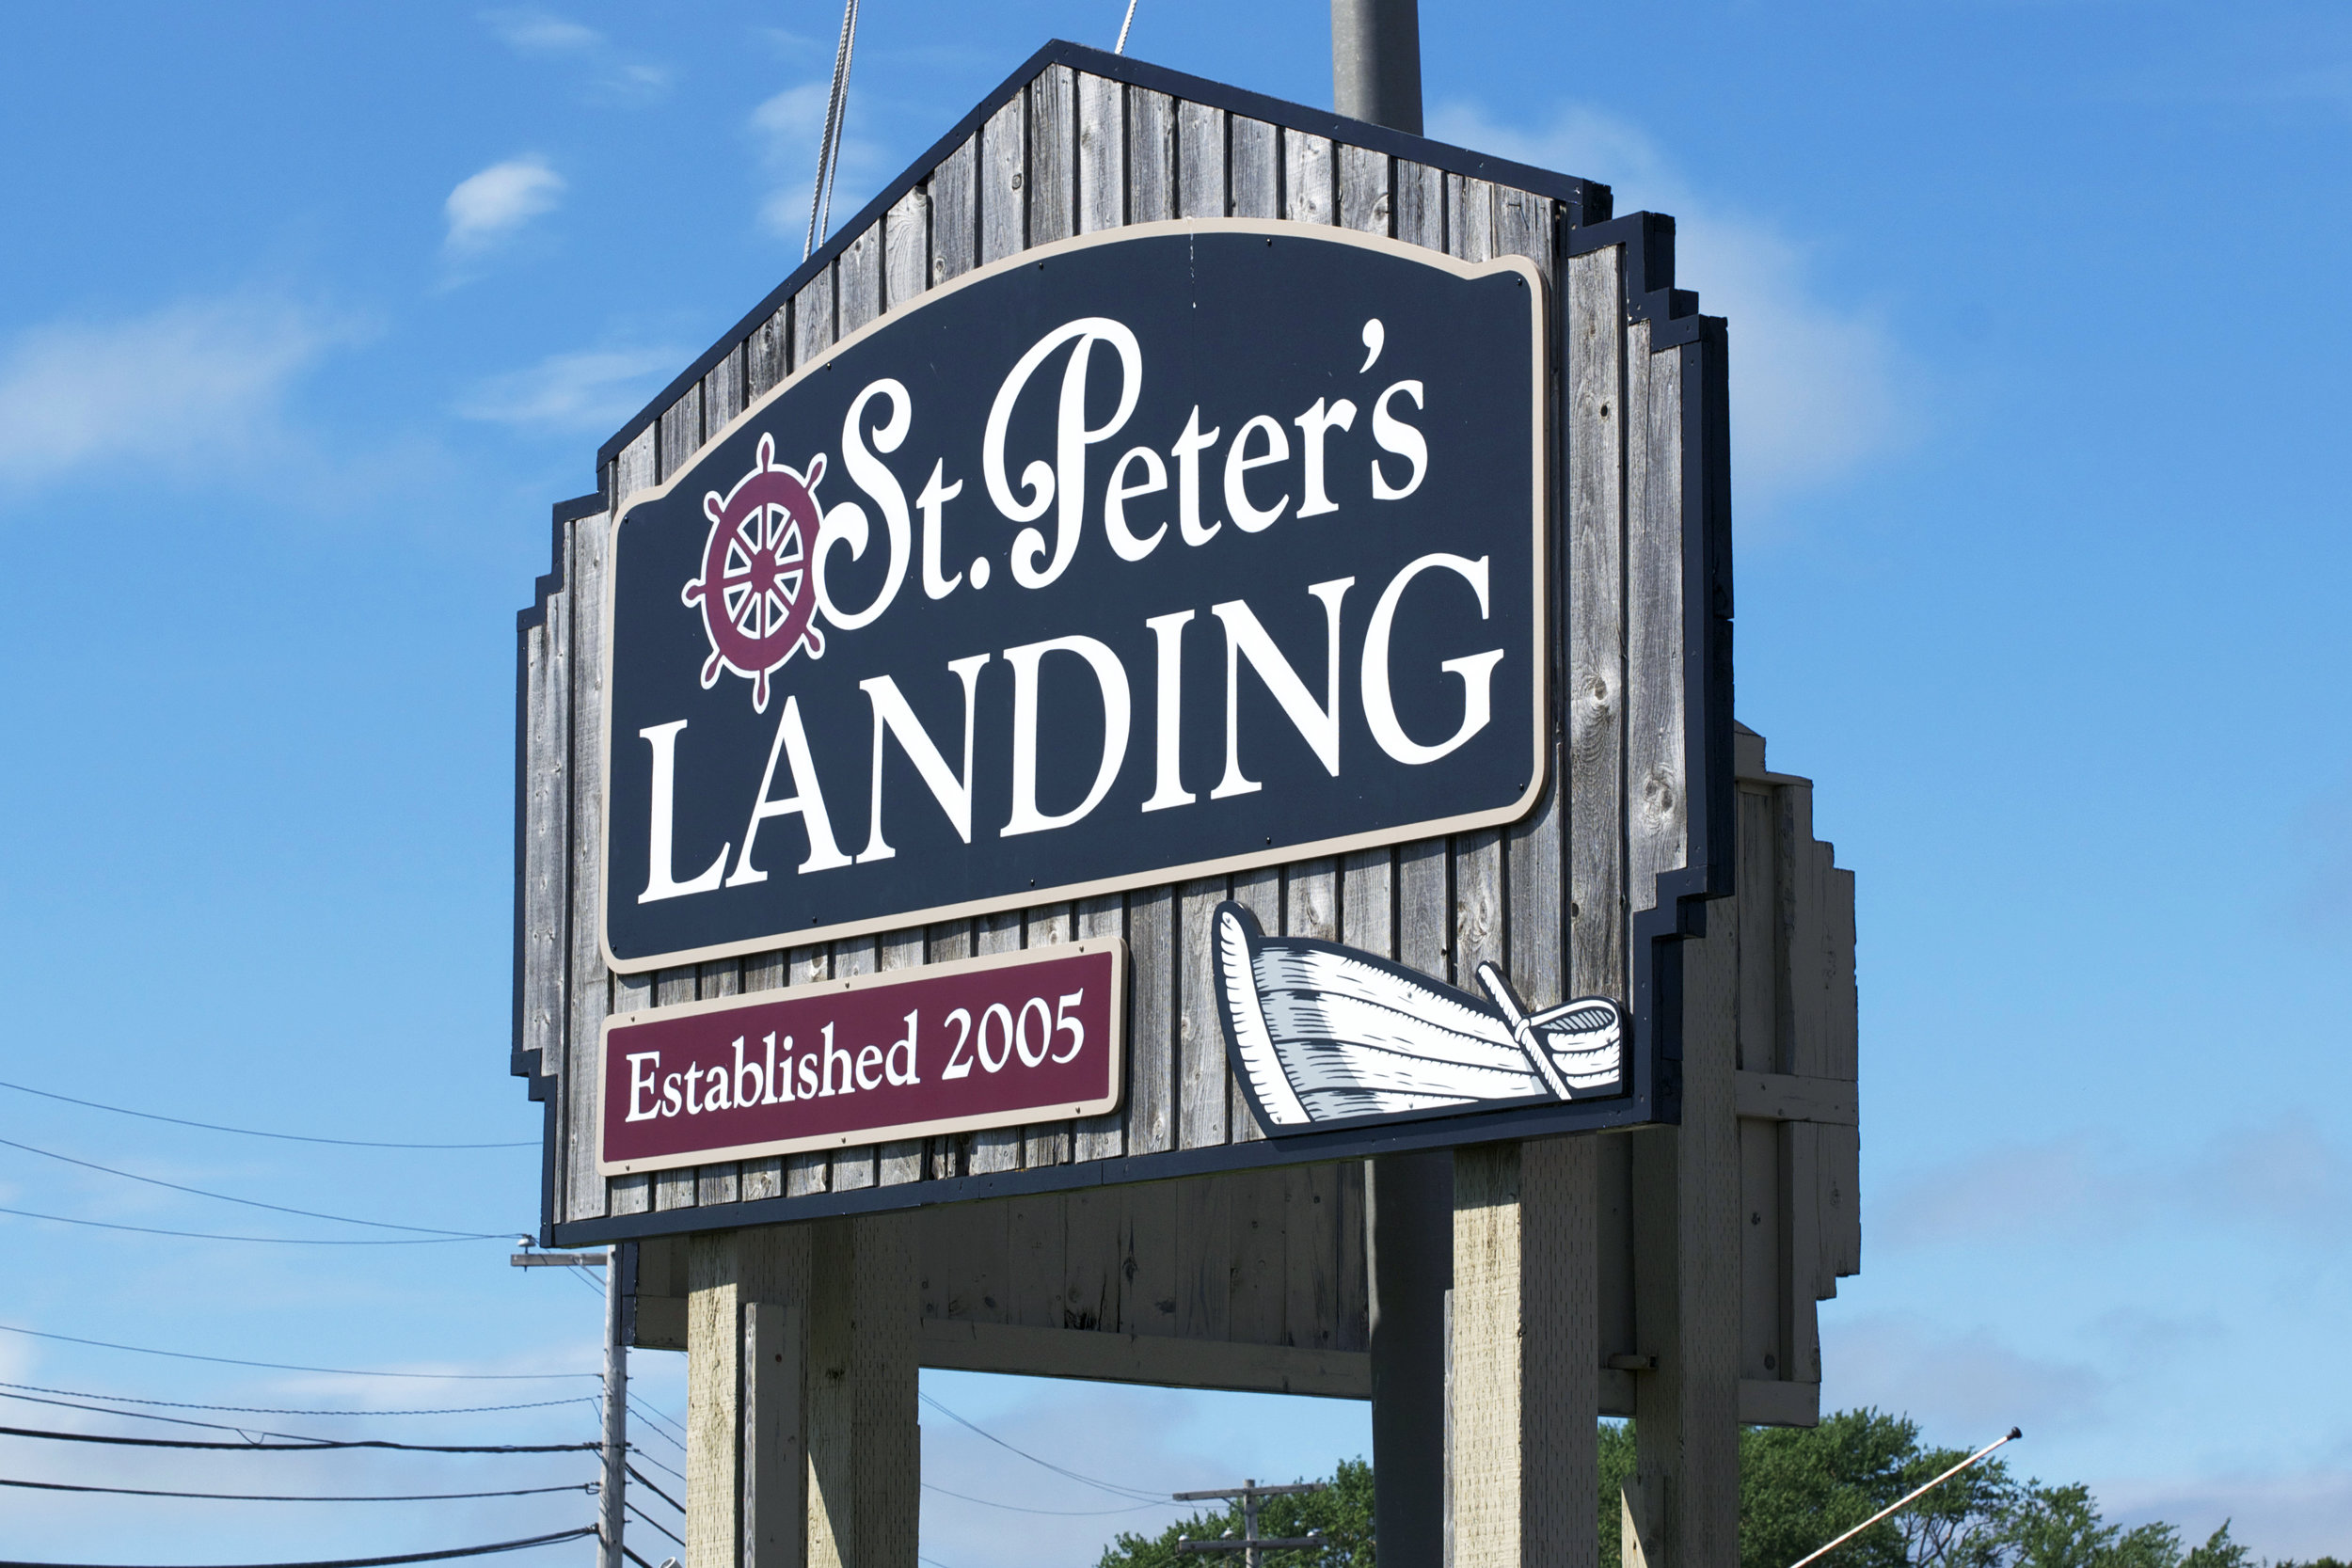 st-peters-landing.jpg